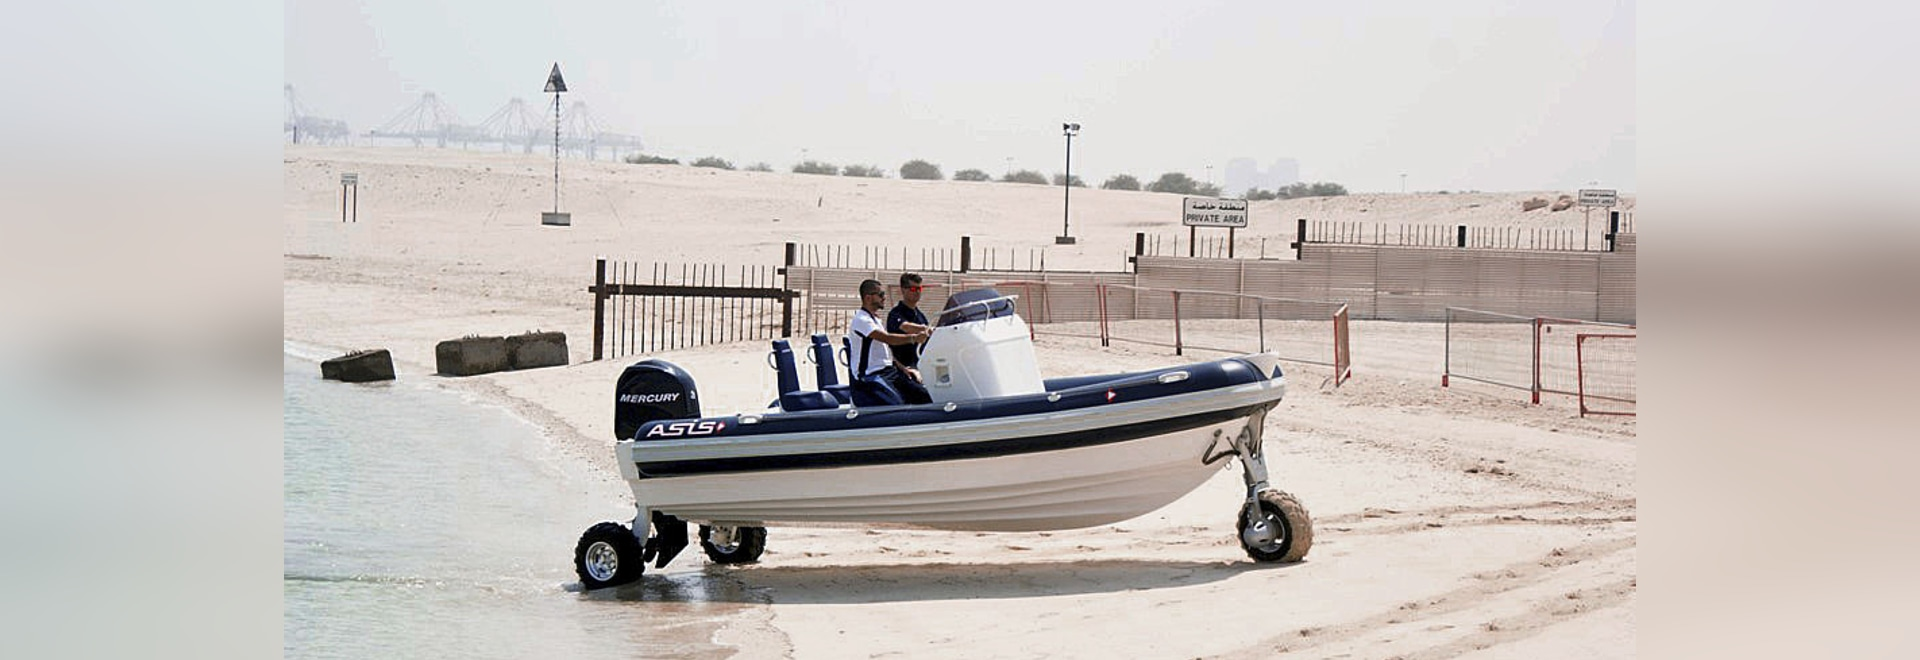 ASIS Amphibious Boat is making waves in boating industry after its launching